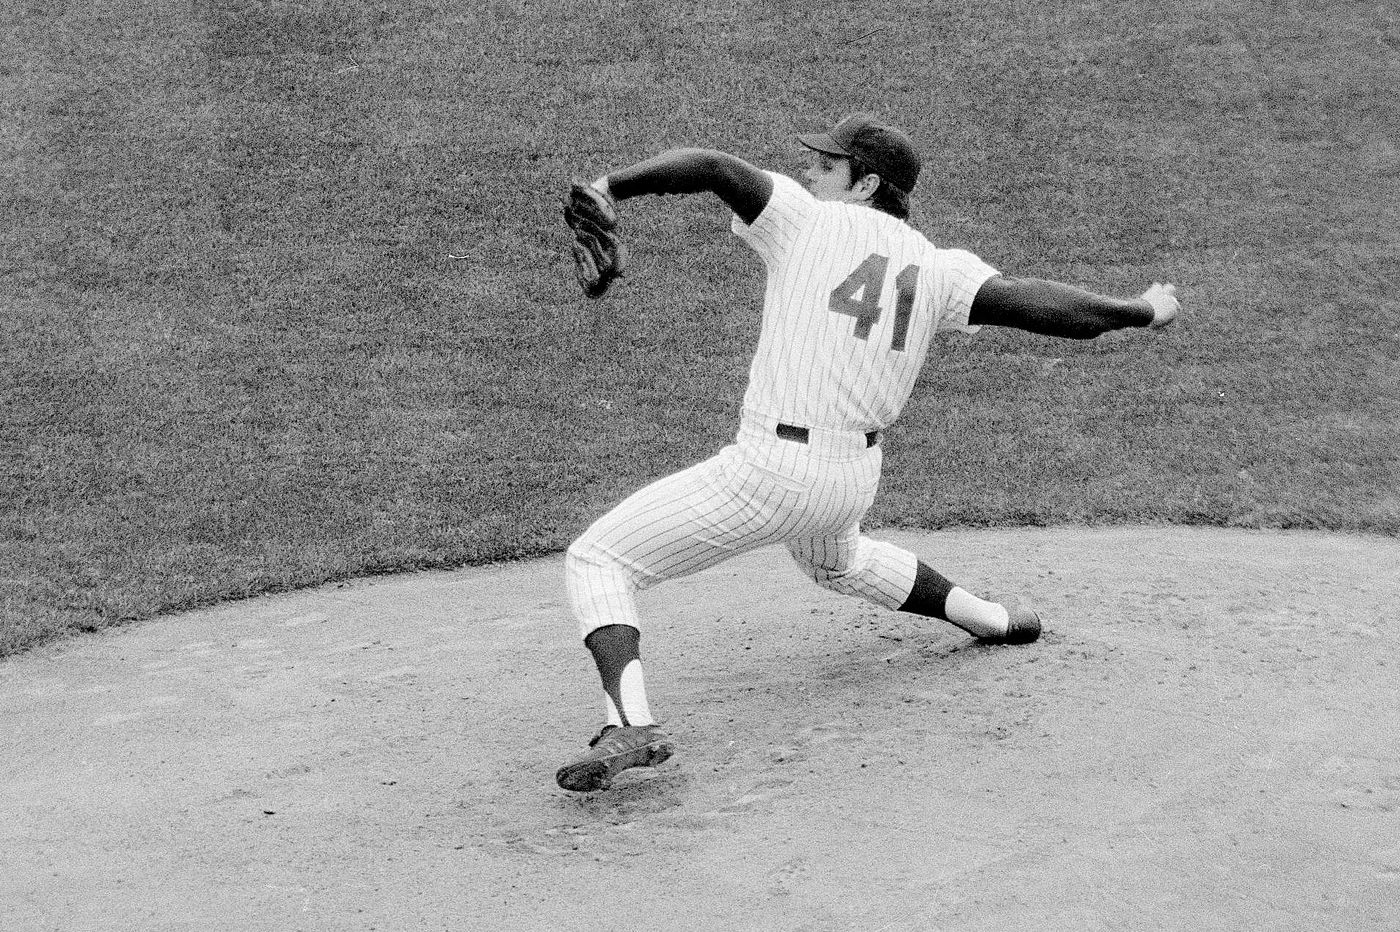 'He was The Franchise' and other Twitter tributes to Tom Seaver